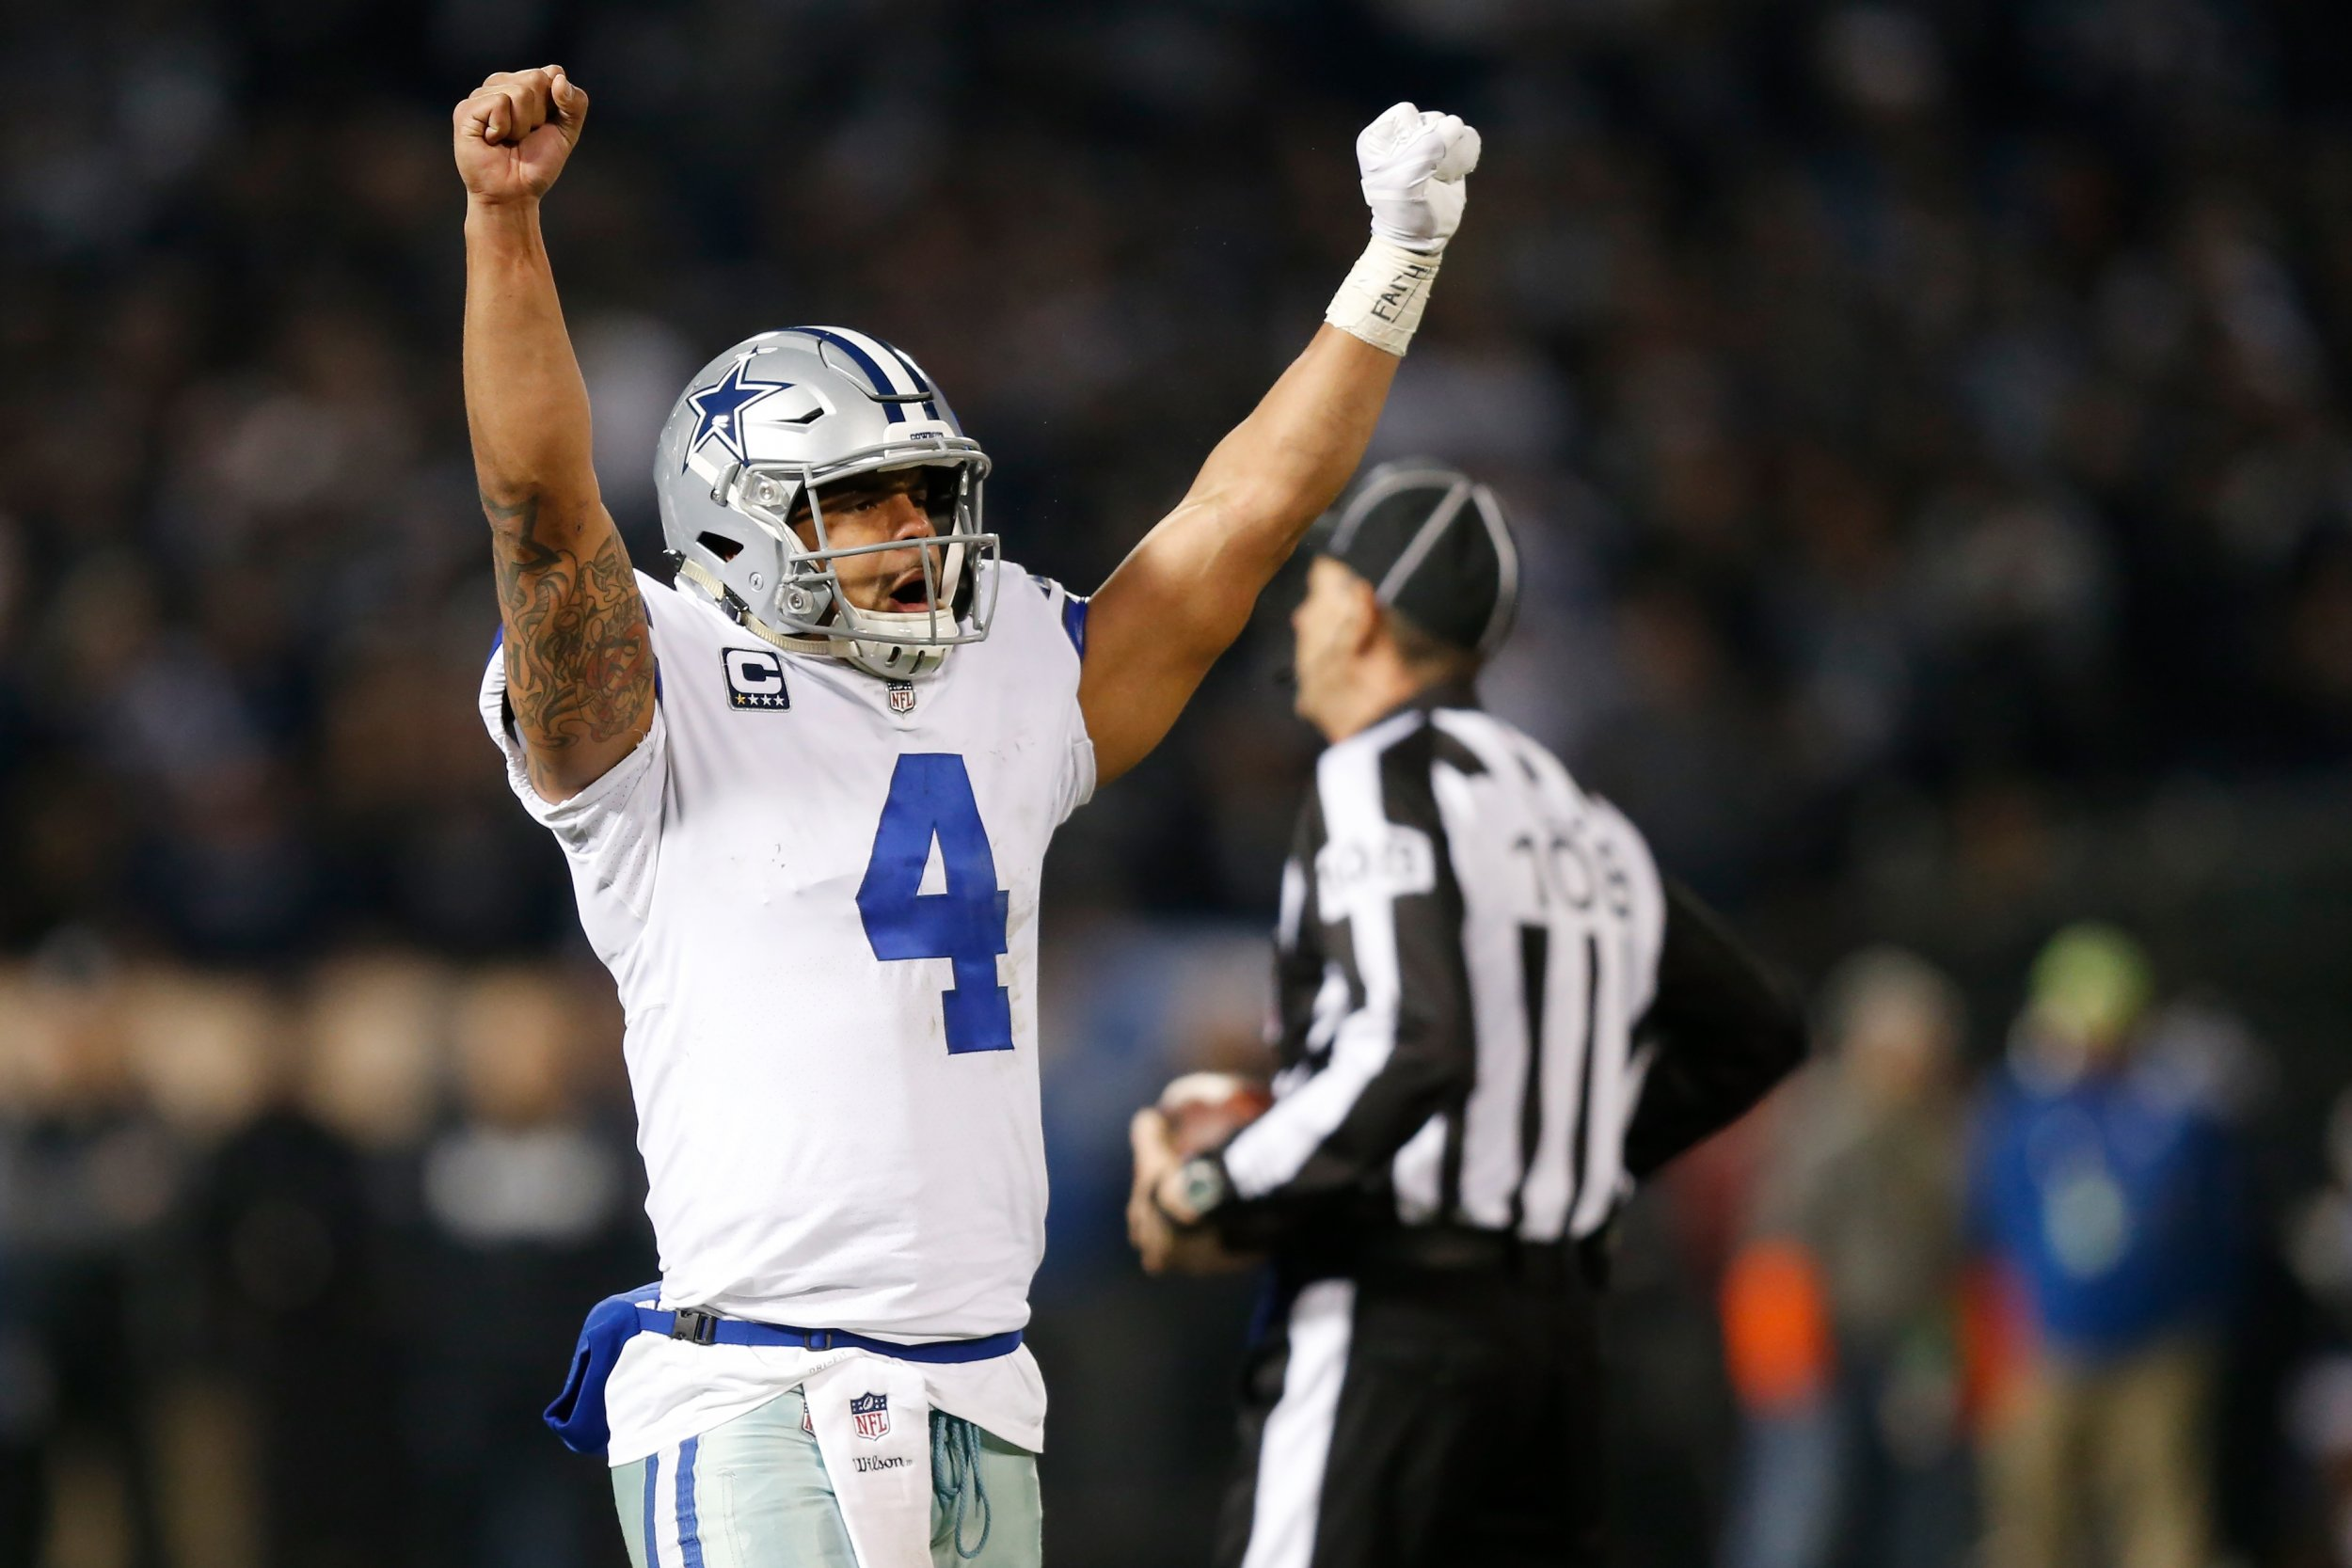 Dallas Cowboys vs. Seattle Seahawks 2018 Live Stream, Score, Updates, TV Channel: How to Watch Cowboys, Seahawks 2018 Online Free